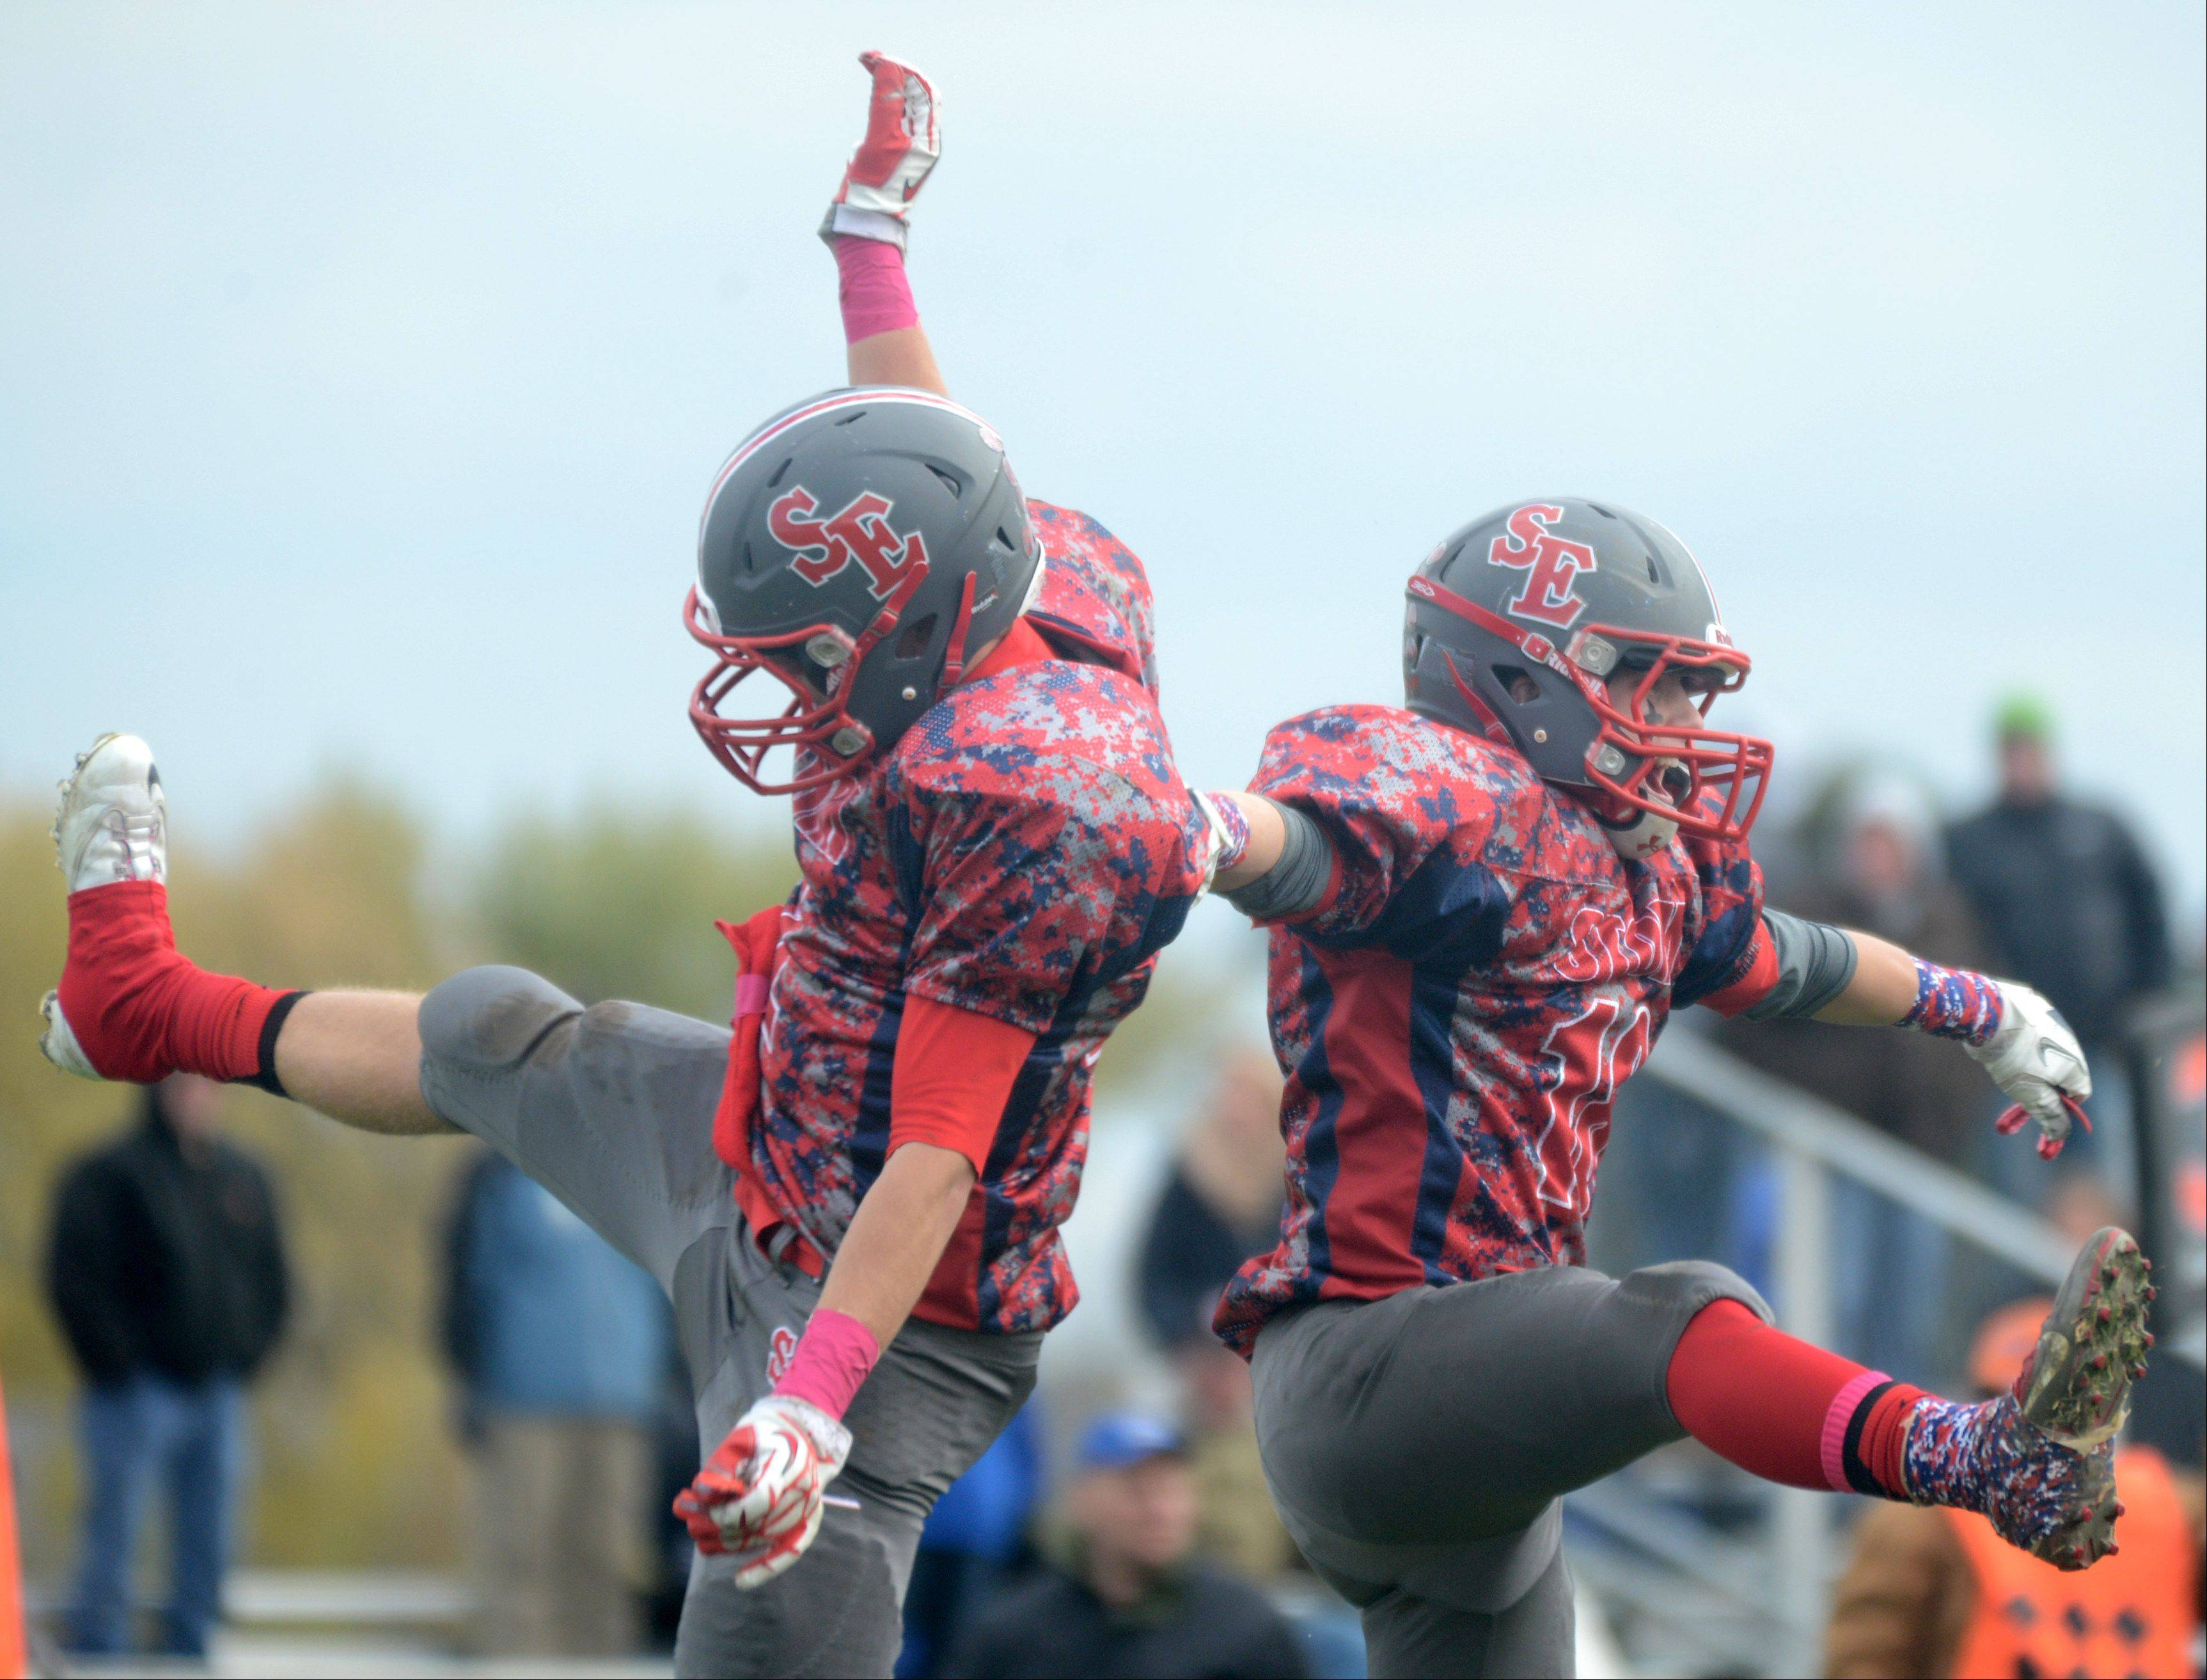 South Elgin's Andrew Kamienski, left, and Nick Menken, right, celebrate a Menken touchdown reception against St. Charles North.